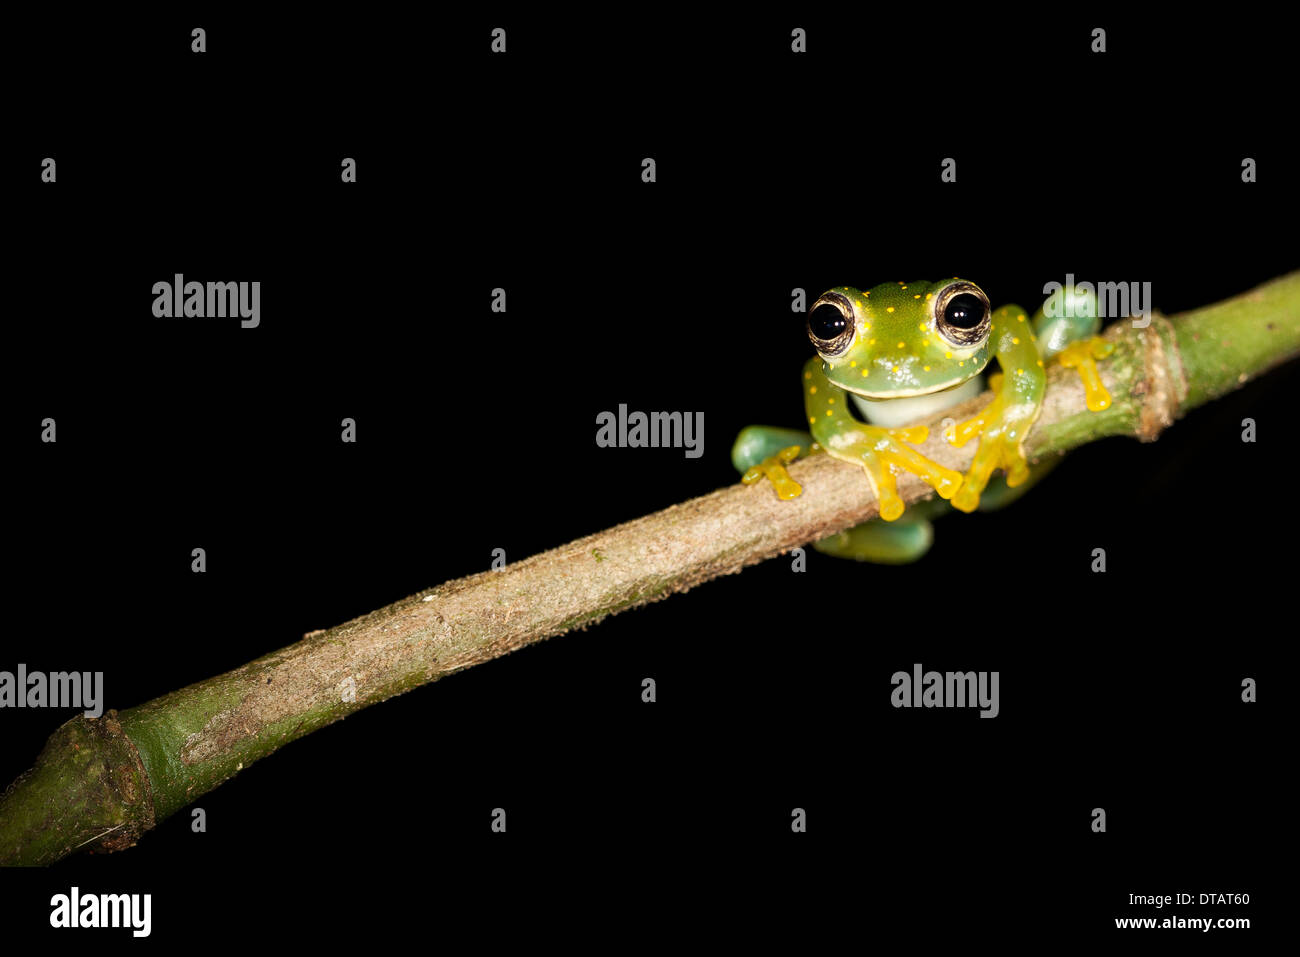 Yellow-flecked Glass Frog, Cochranella albomaculata, in the rainforest at Burbayar Nature Reserve, Republic of Panama. - Stock Image